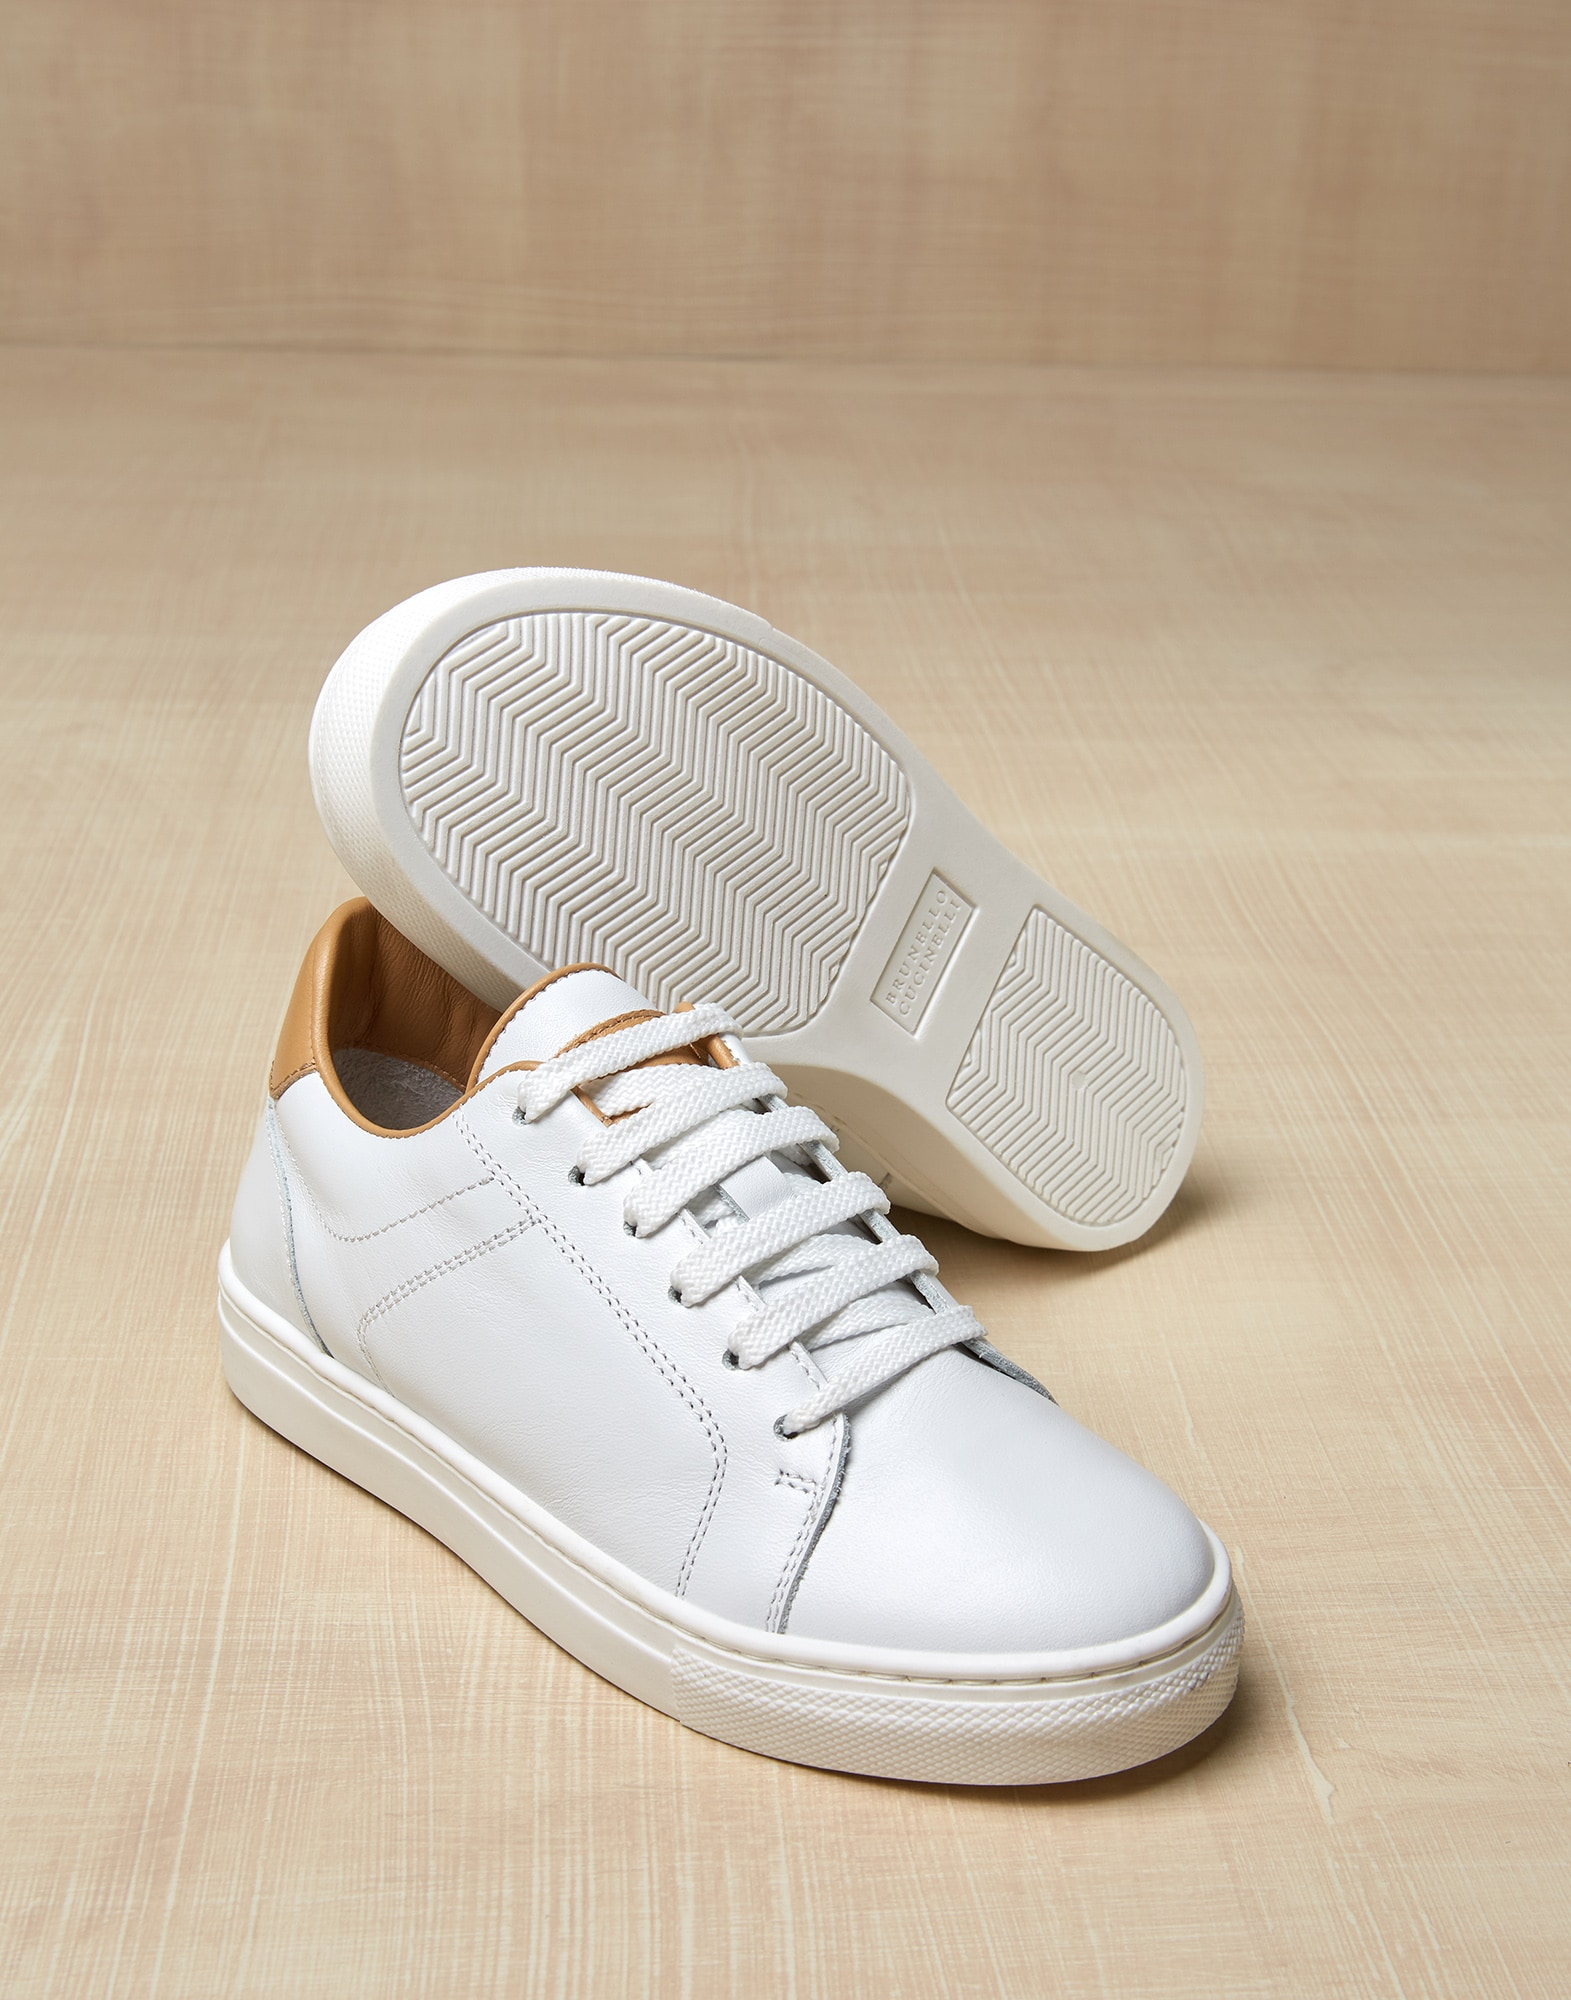 Sneakers White Boy 0 - Brunello Cucinelli